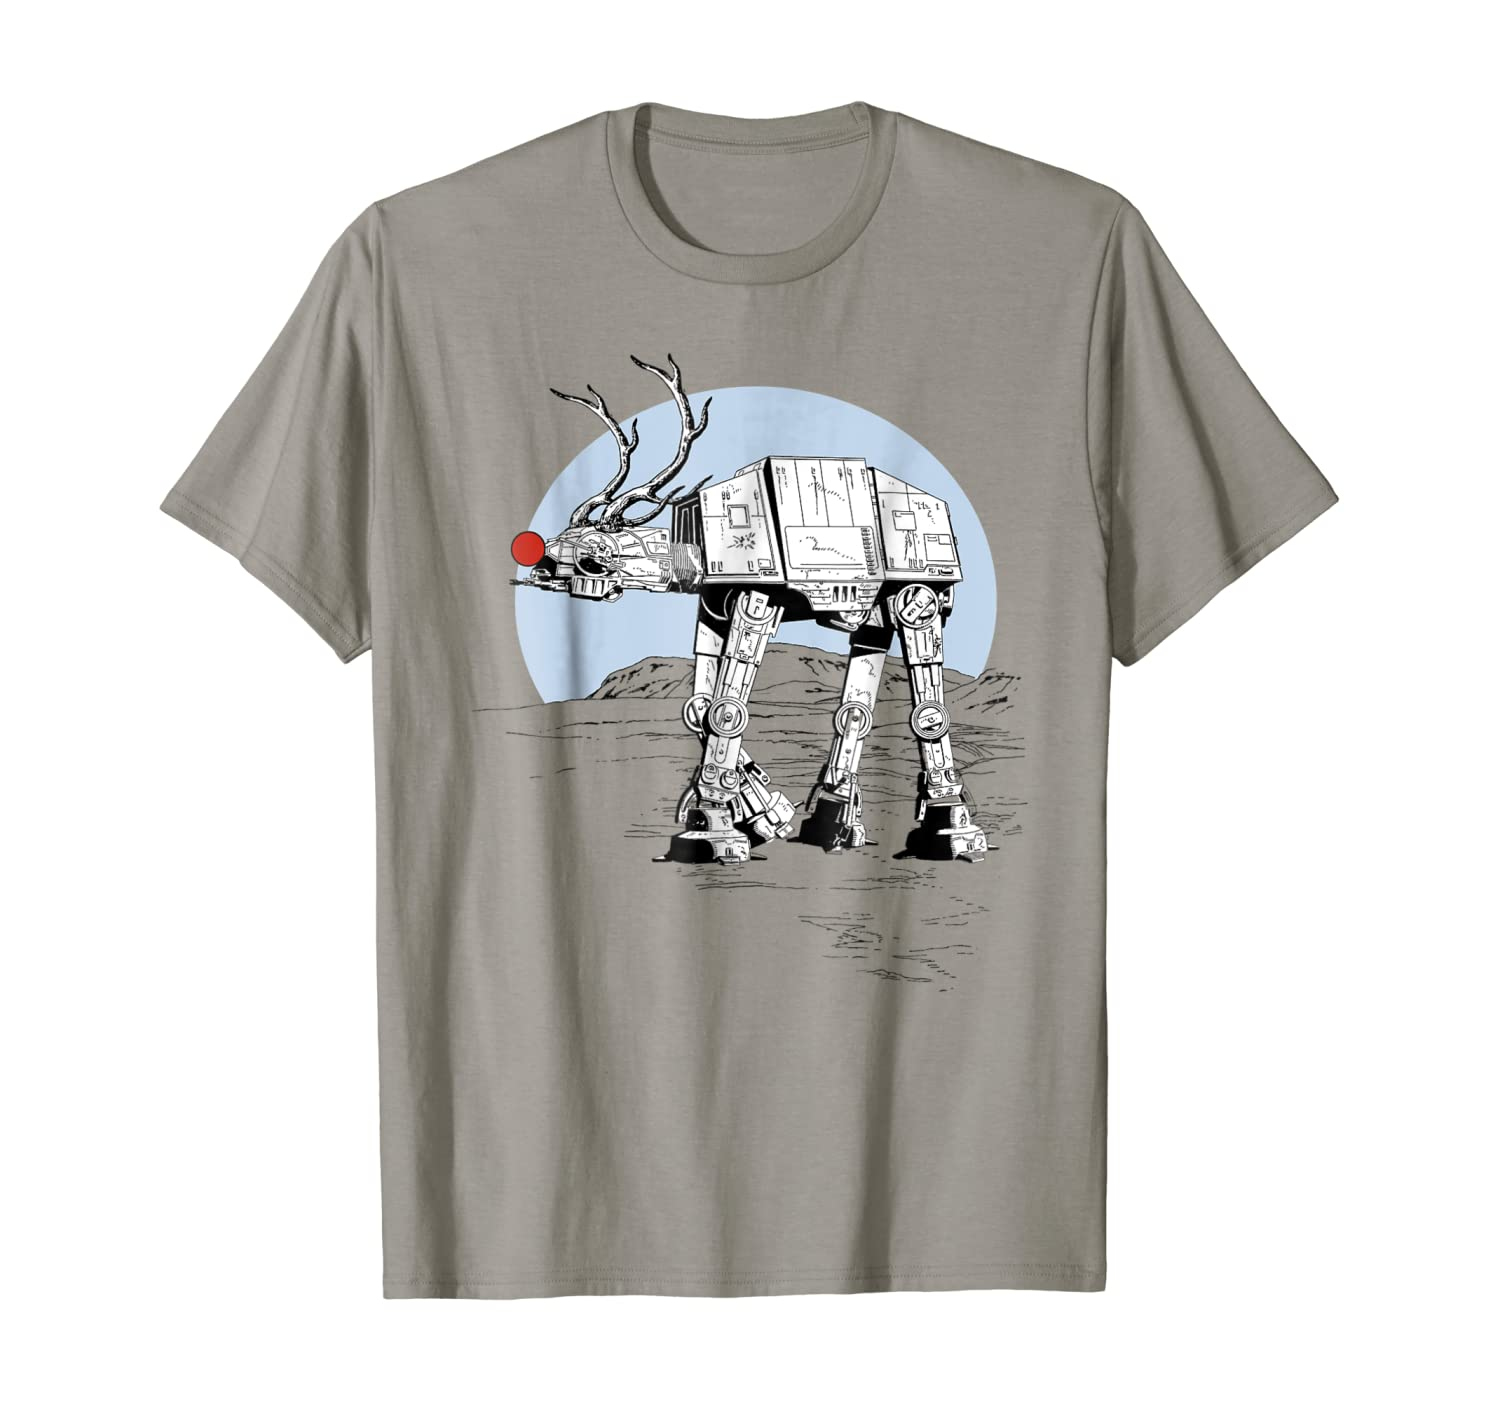 Star Wars Rudolph ATAT Walker Christmas Graphic T-Shirt